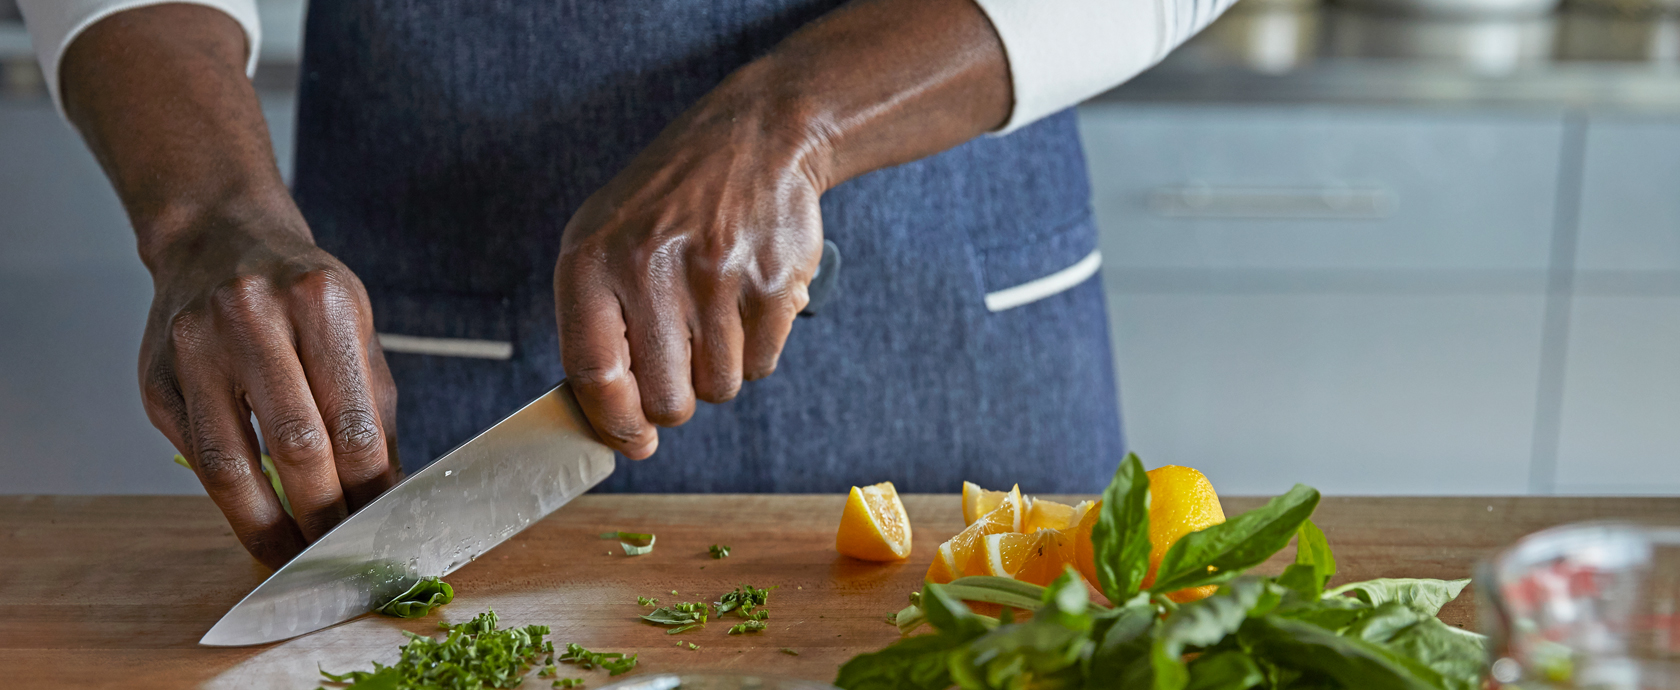 Chef chopping herbs on wooden counter